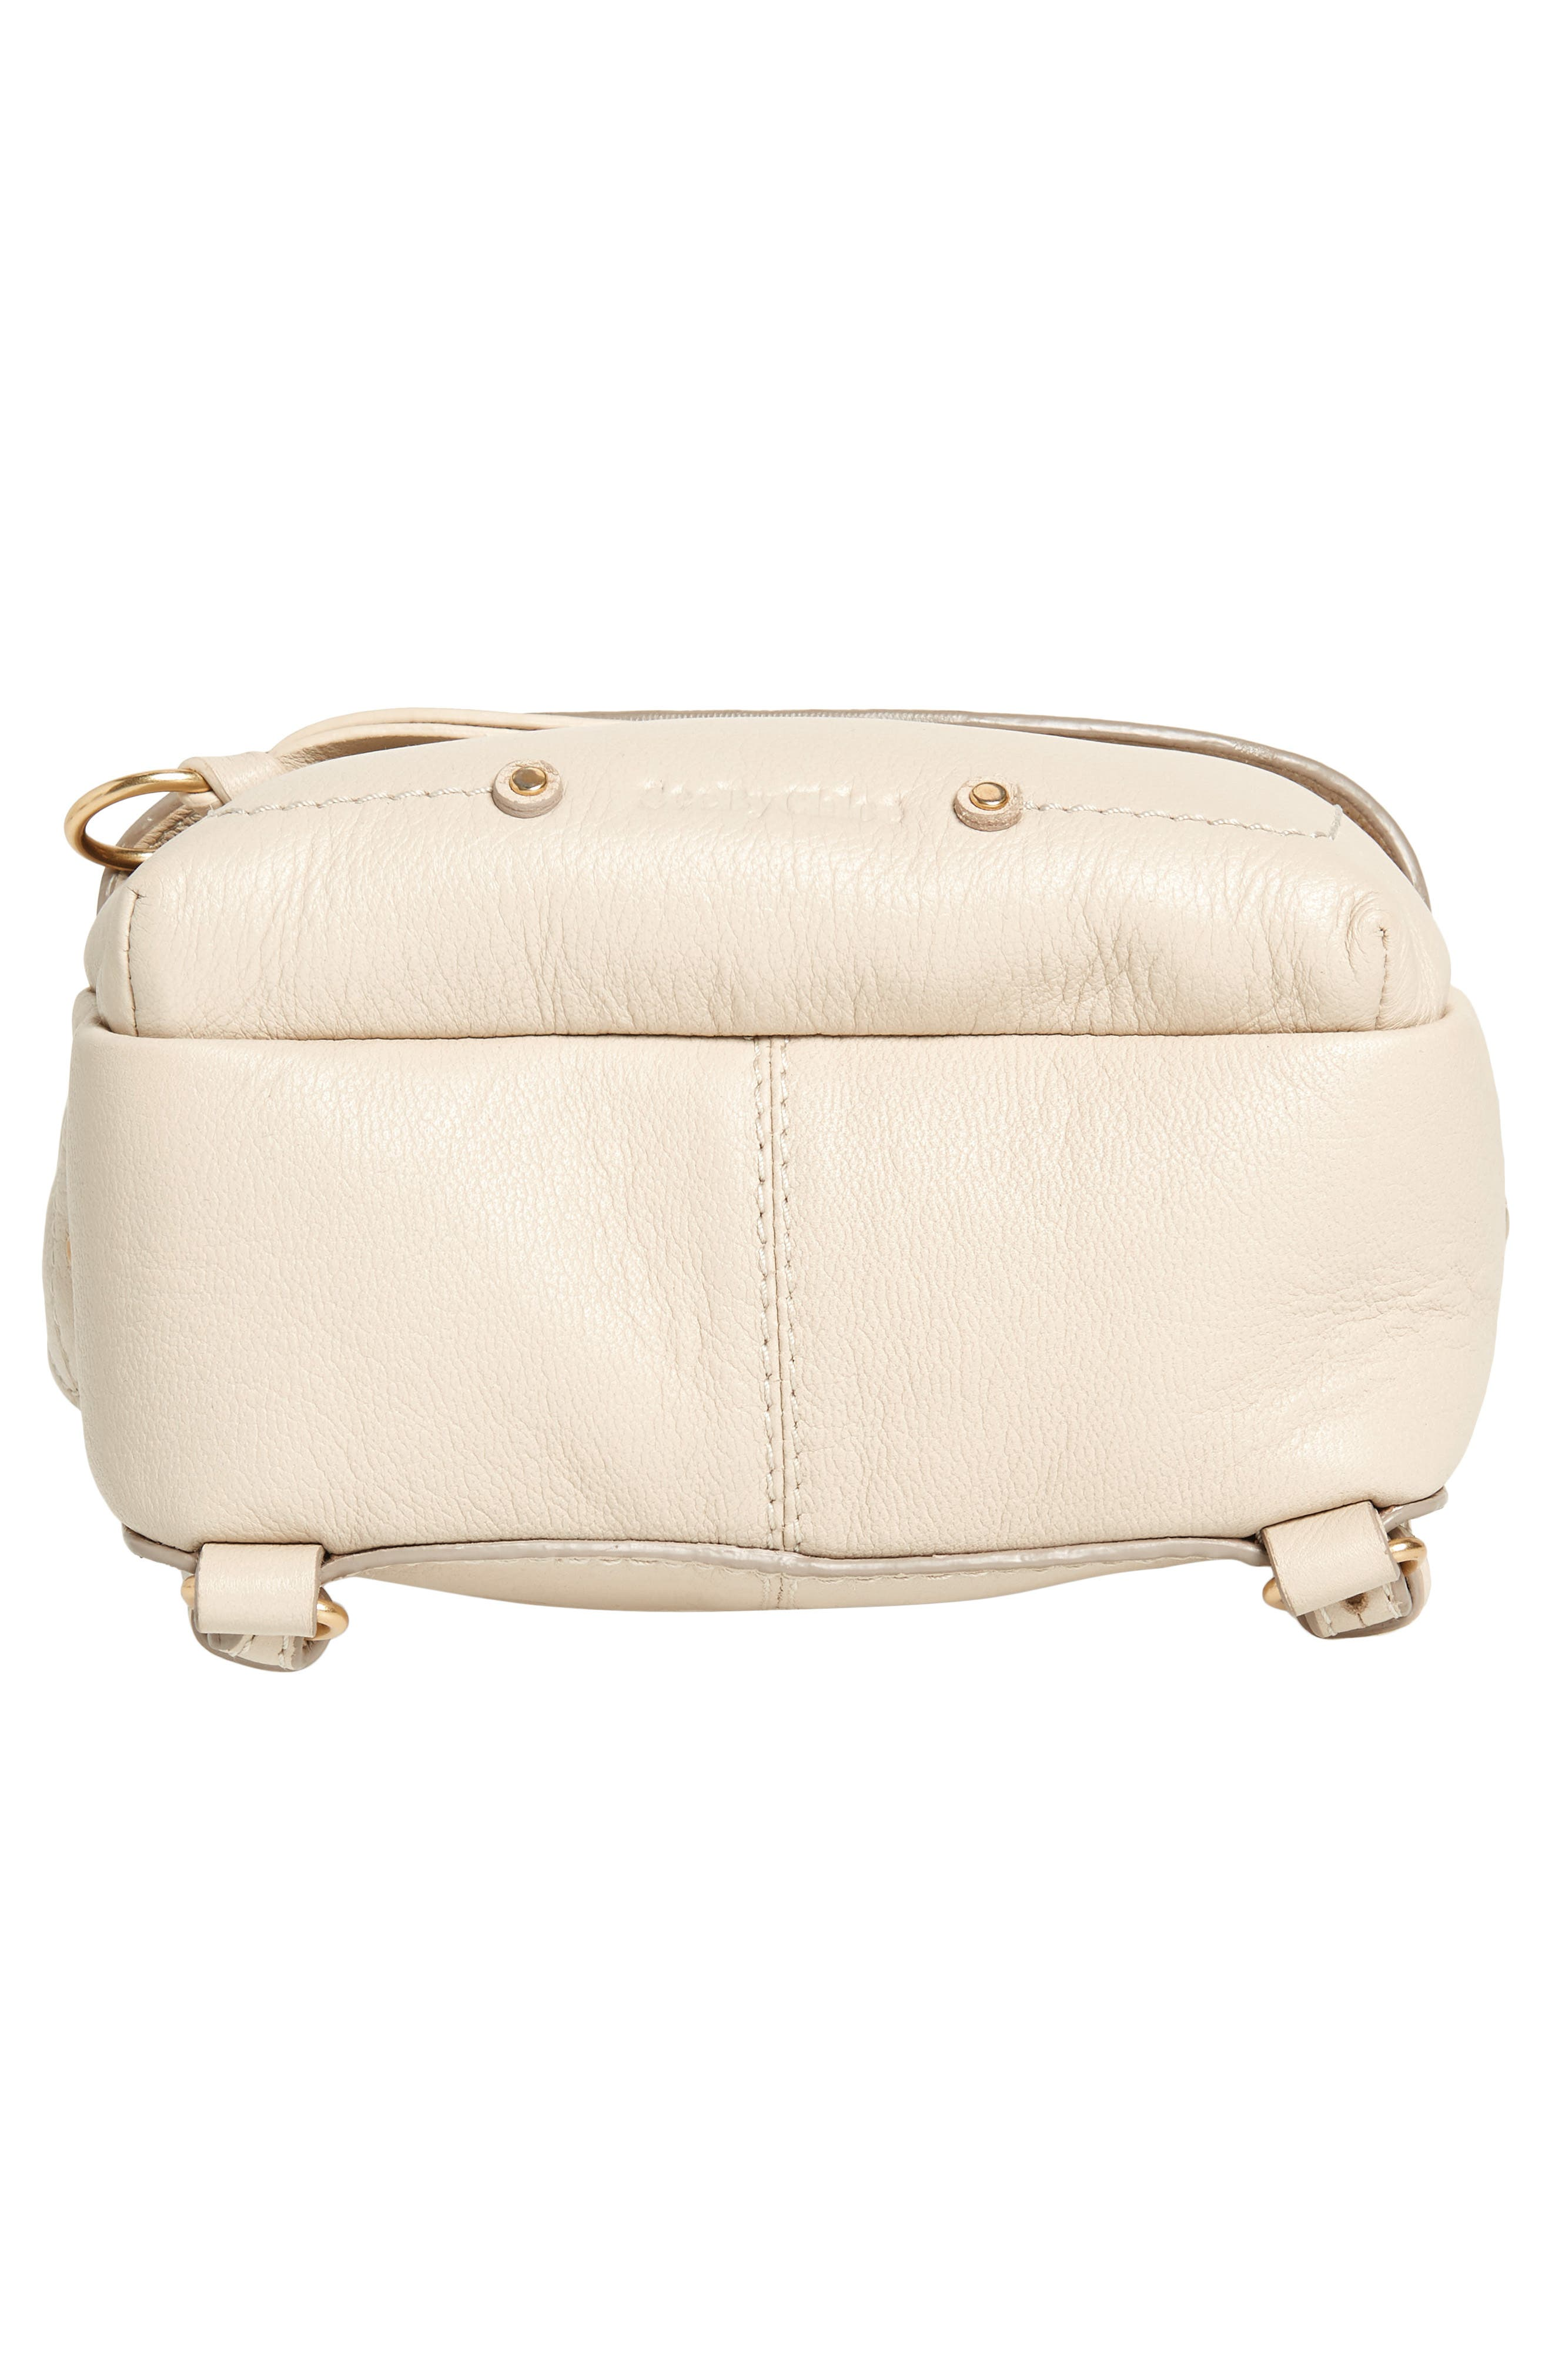 Mini Mino Leather Backpack,                             Alternate thumbnail 7, color,                             CEMENT BEIGE